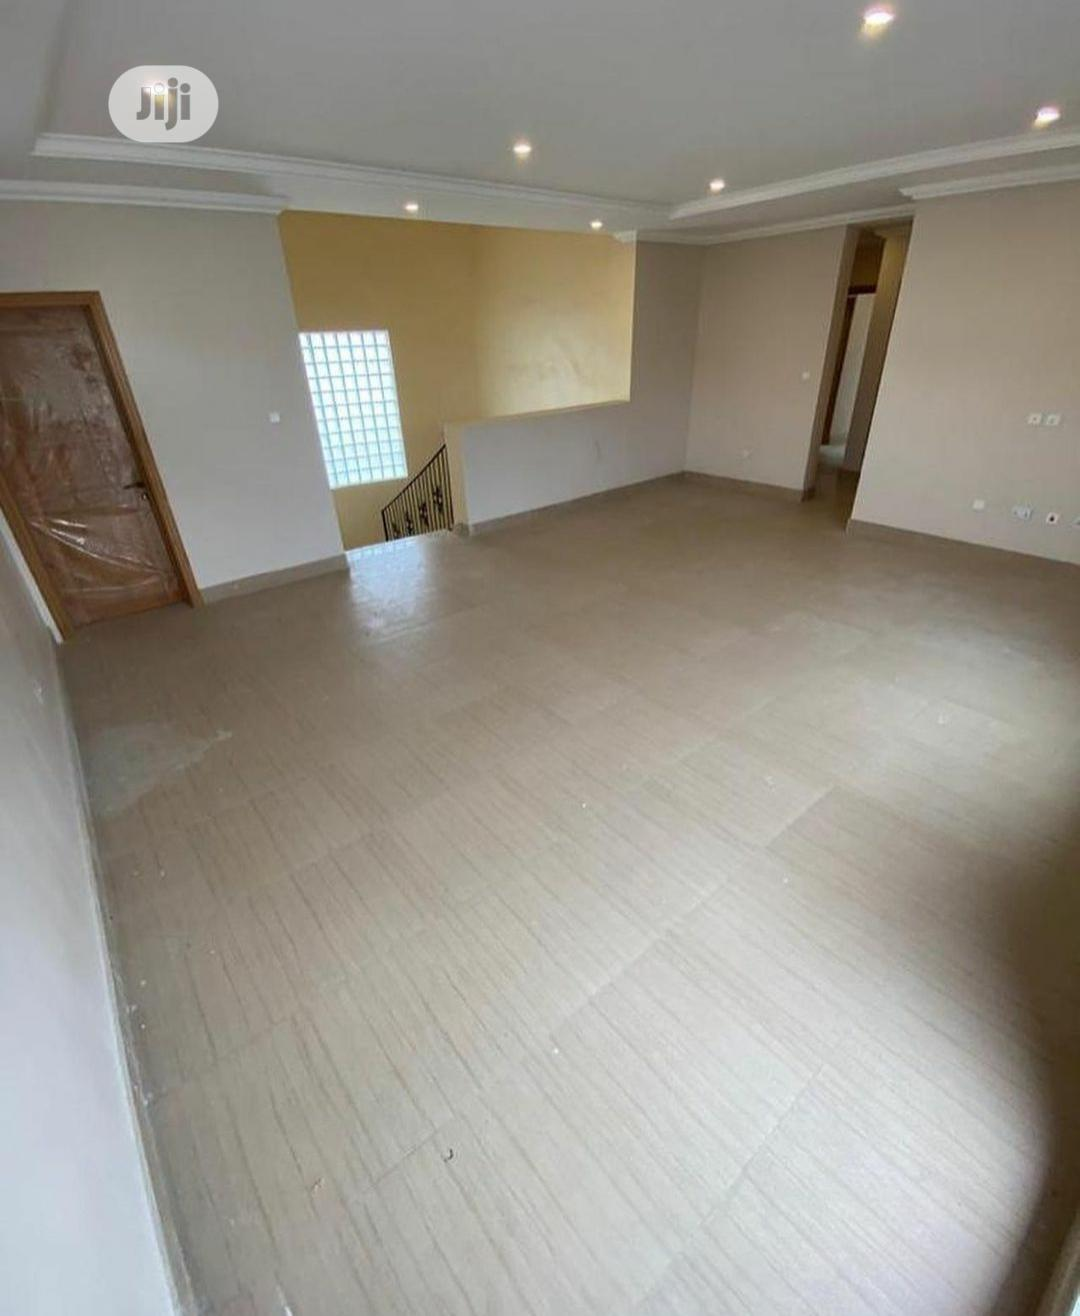 5 Bedroom Duplex for Sale in Parkview Estate Ikoyi, Lagos   Houses & Apartments For Sale for sale in Ikoyi, Lagos State, Nigeria